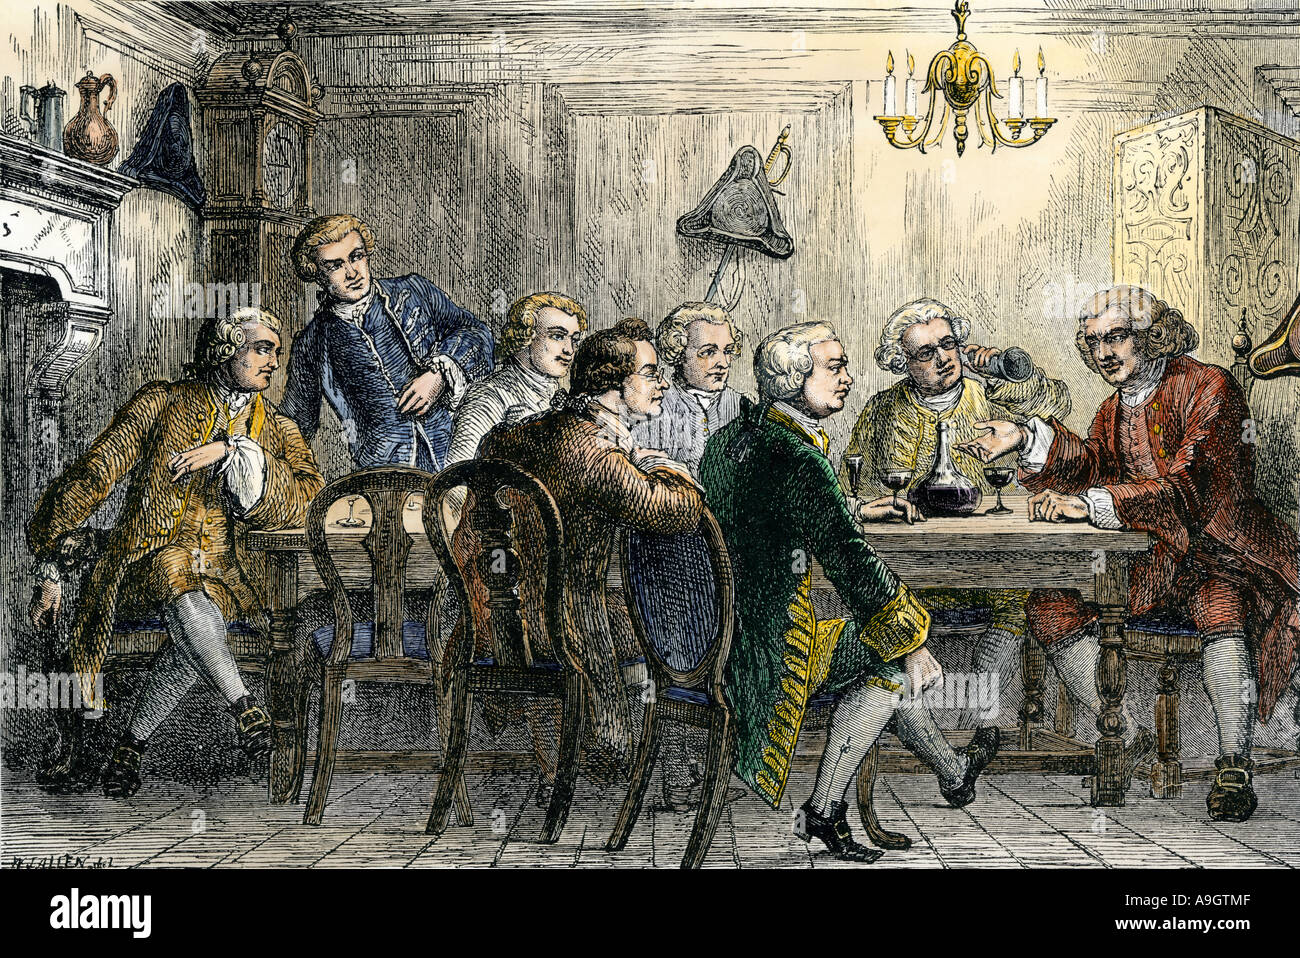 Samuel Johnson and James Boswell at the Literary Club in London 1700s. Hand-colored woodcut - Stock Image